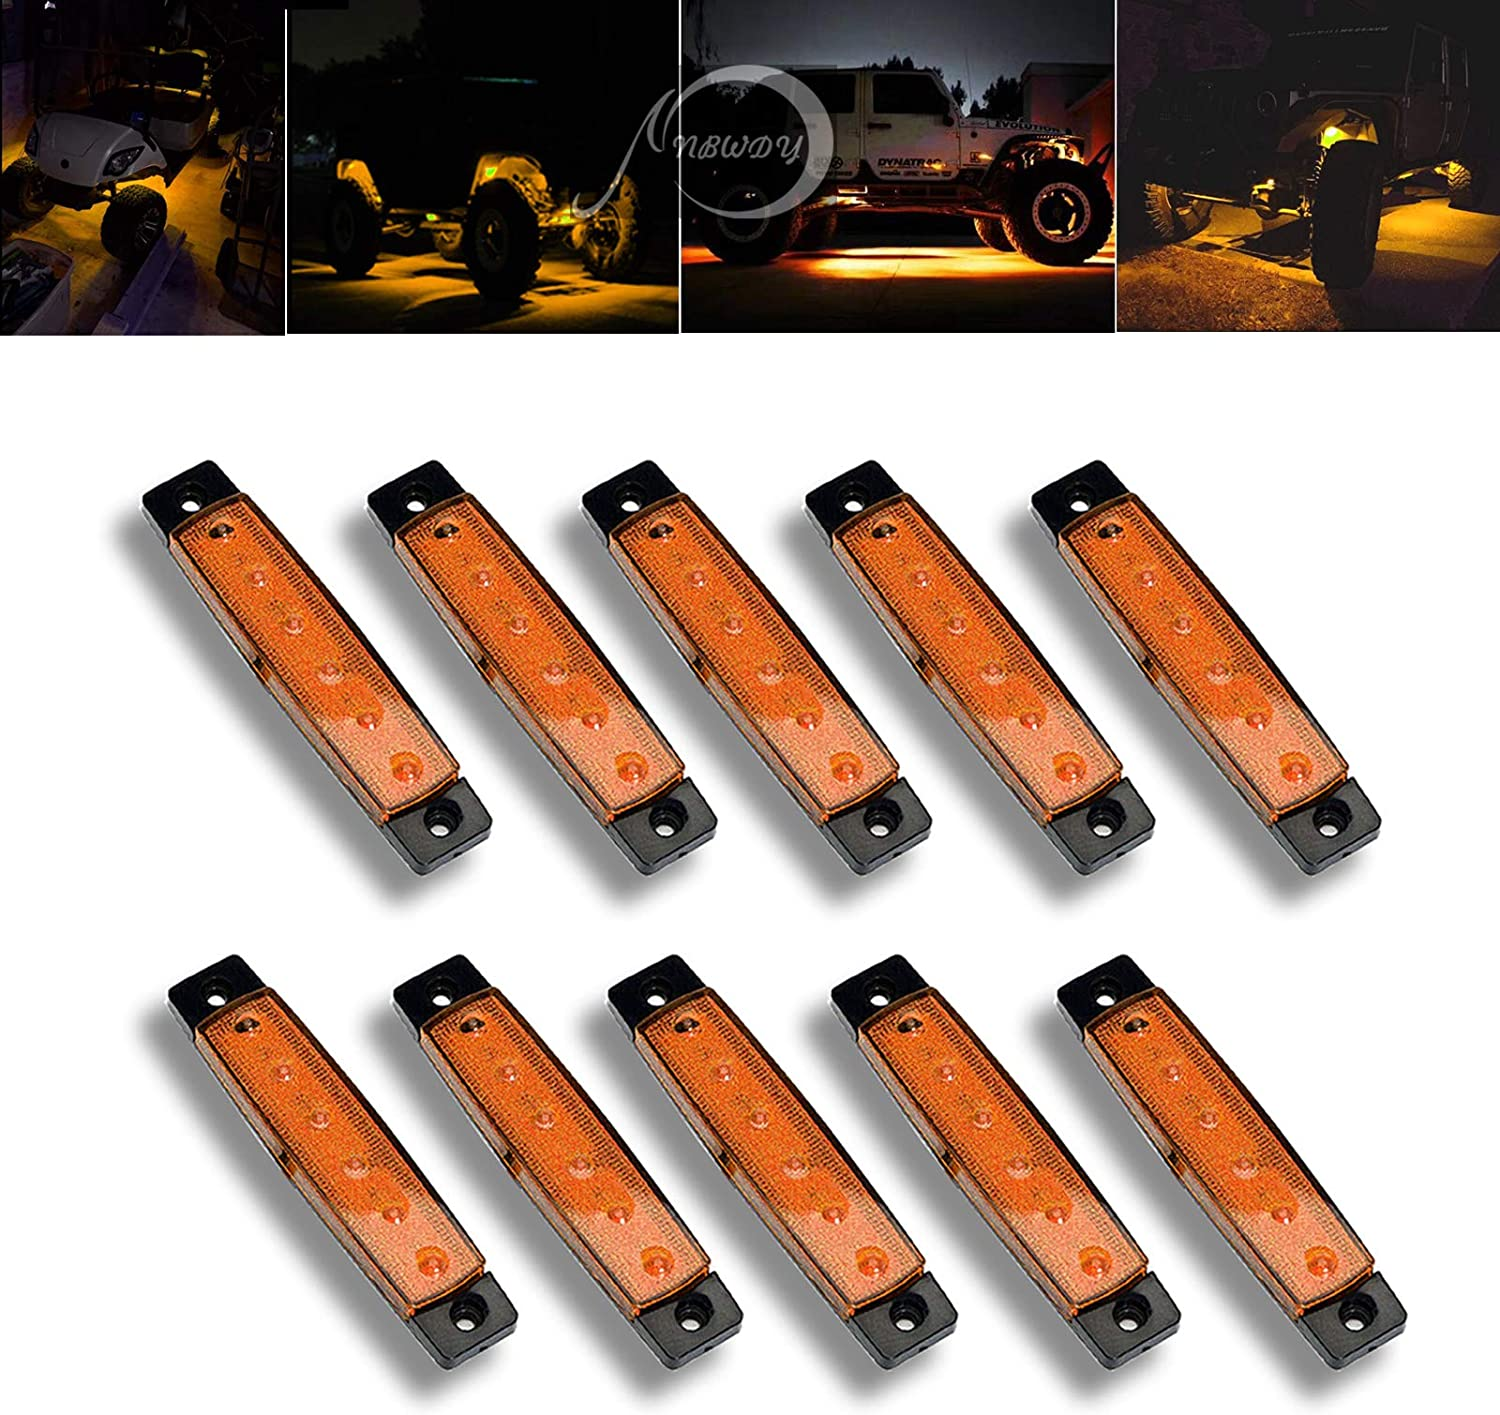 Red Cab,RV,SUV HGV,Offroad NBWDY 10 Pcs Waterproof 3.8 Sealed Red LED Marker//Rock//Wheel//Underglow Light Kits for Jeep,Snowmobile,Truck,Golf Cart,Lorry,RV,Camper